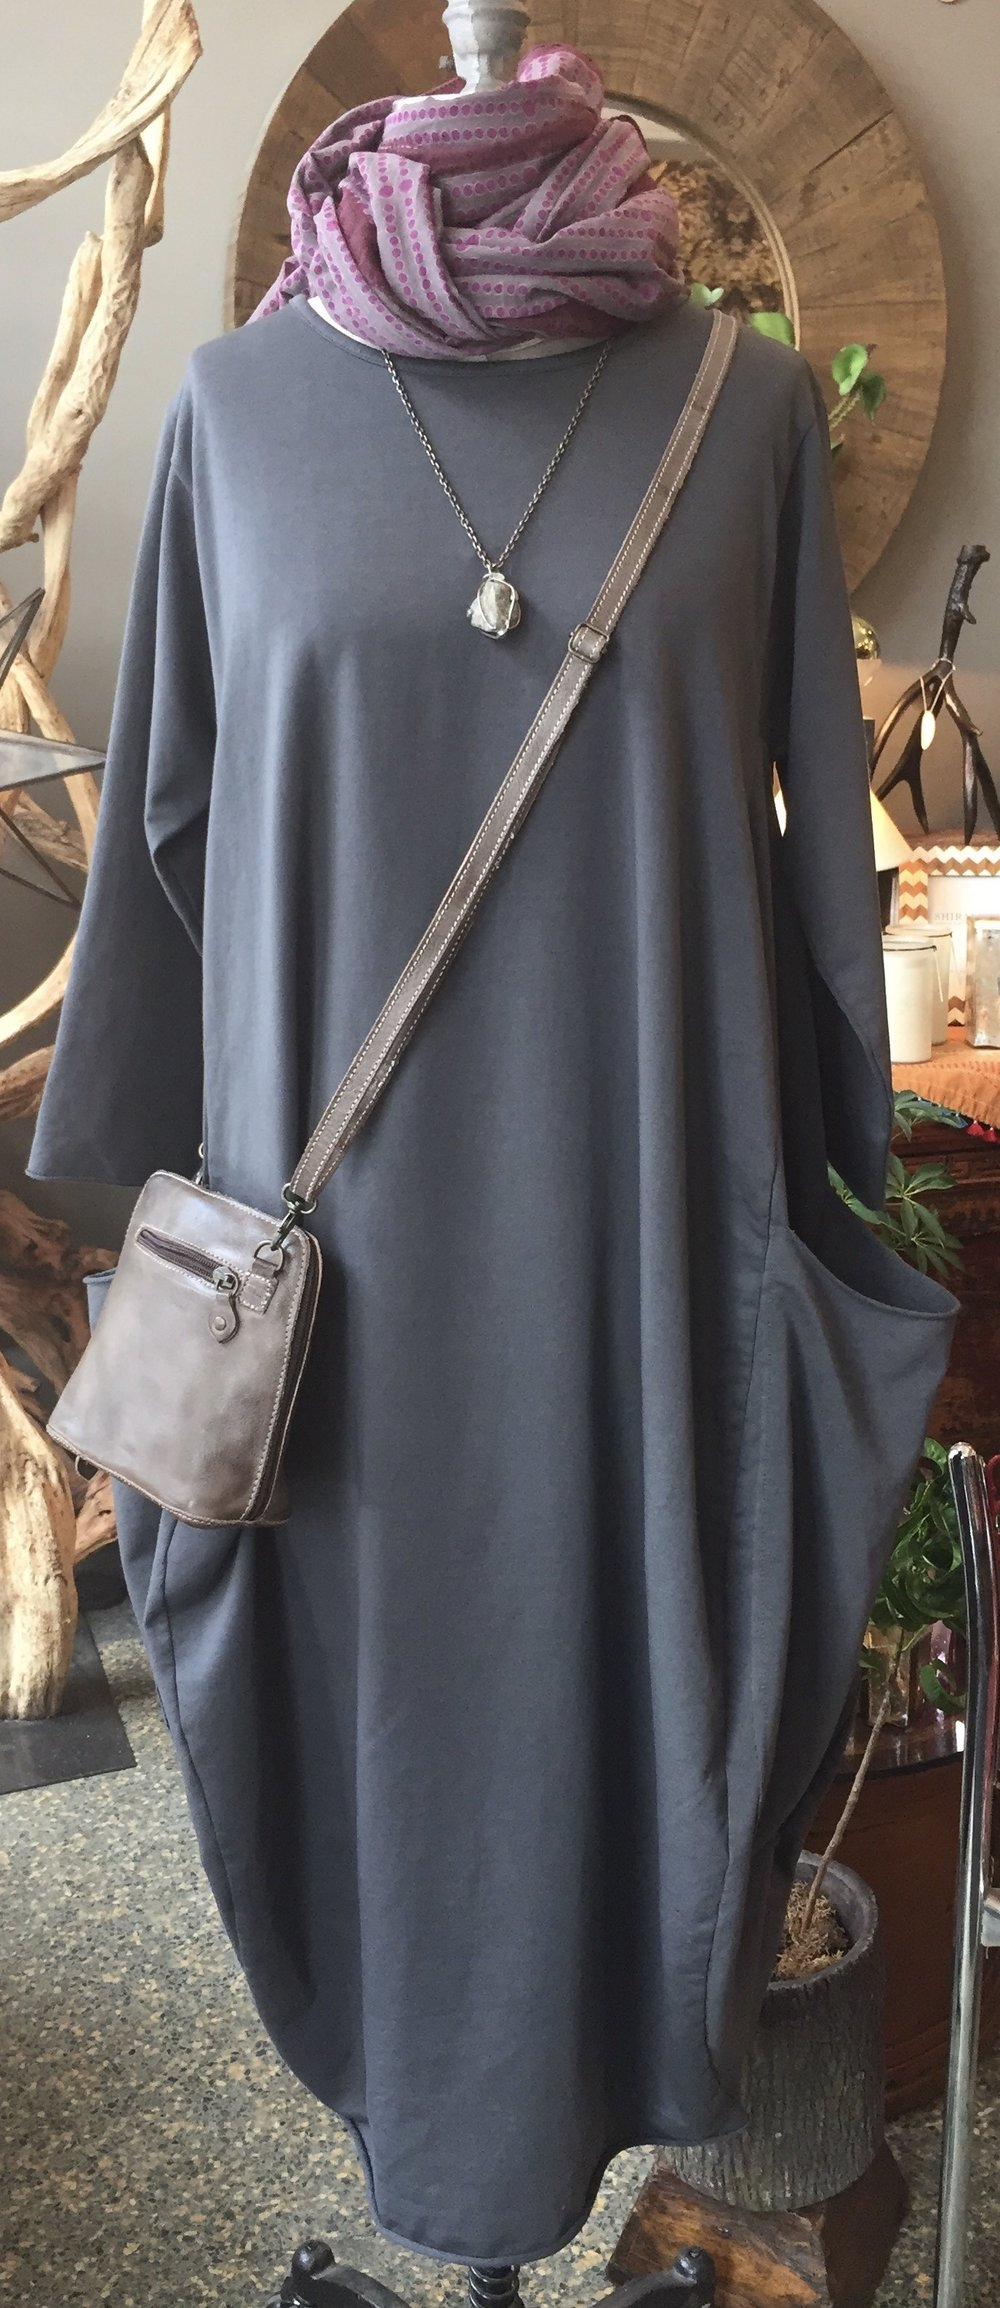 FullSizeRender_2 copy 2.jpg